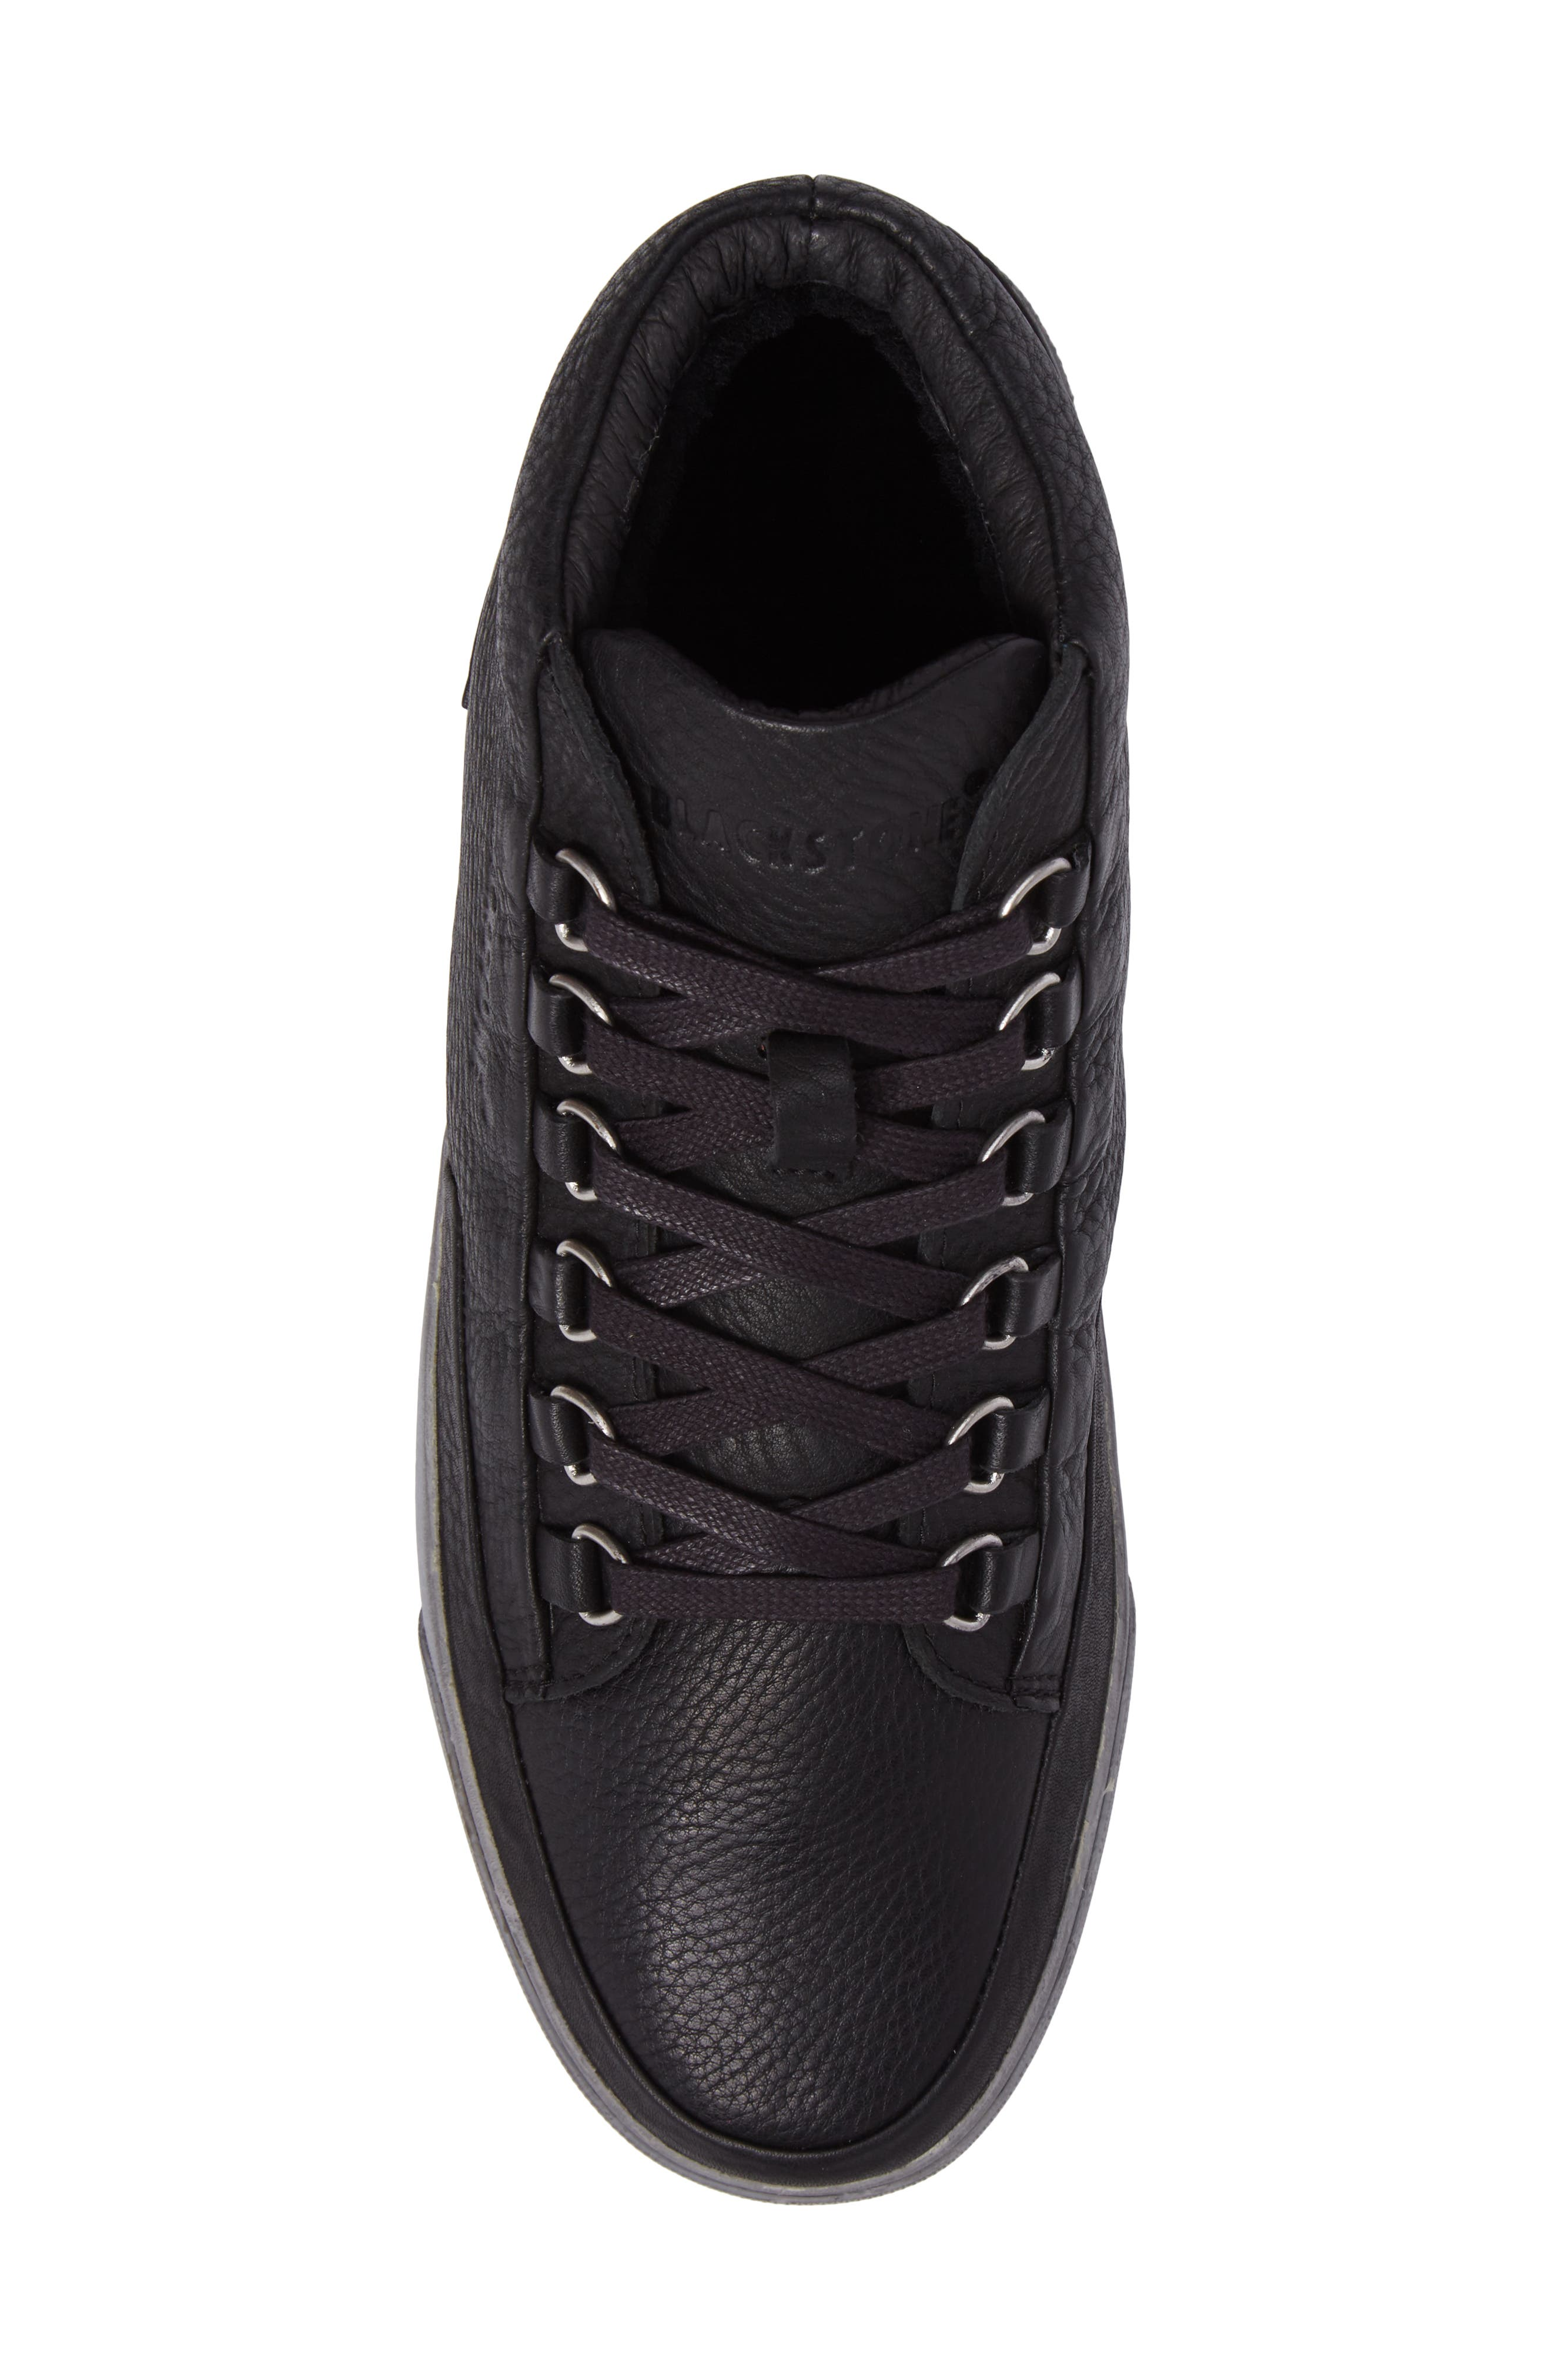 KM 02 Sneaker with Genuine Shearling Lining,                             Alternate thumbnail 5, color,                             Black Leather